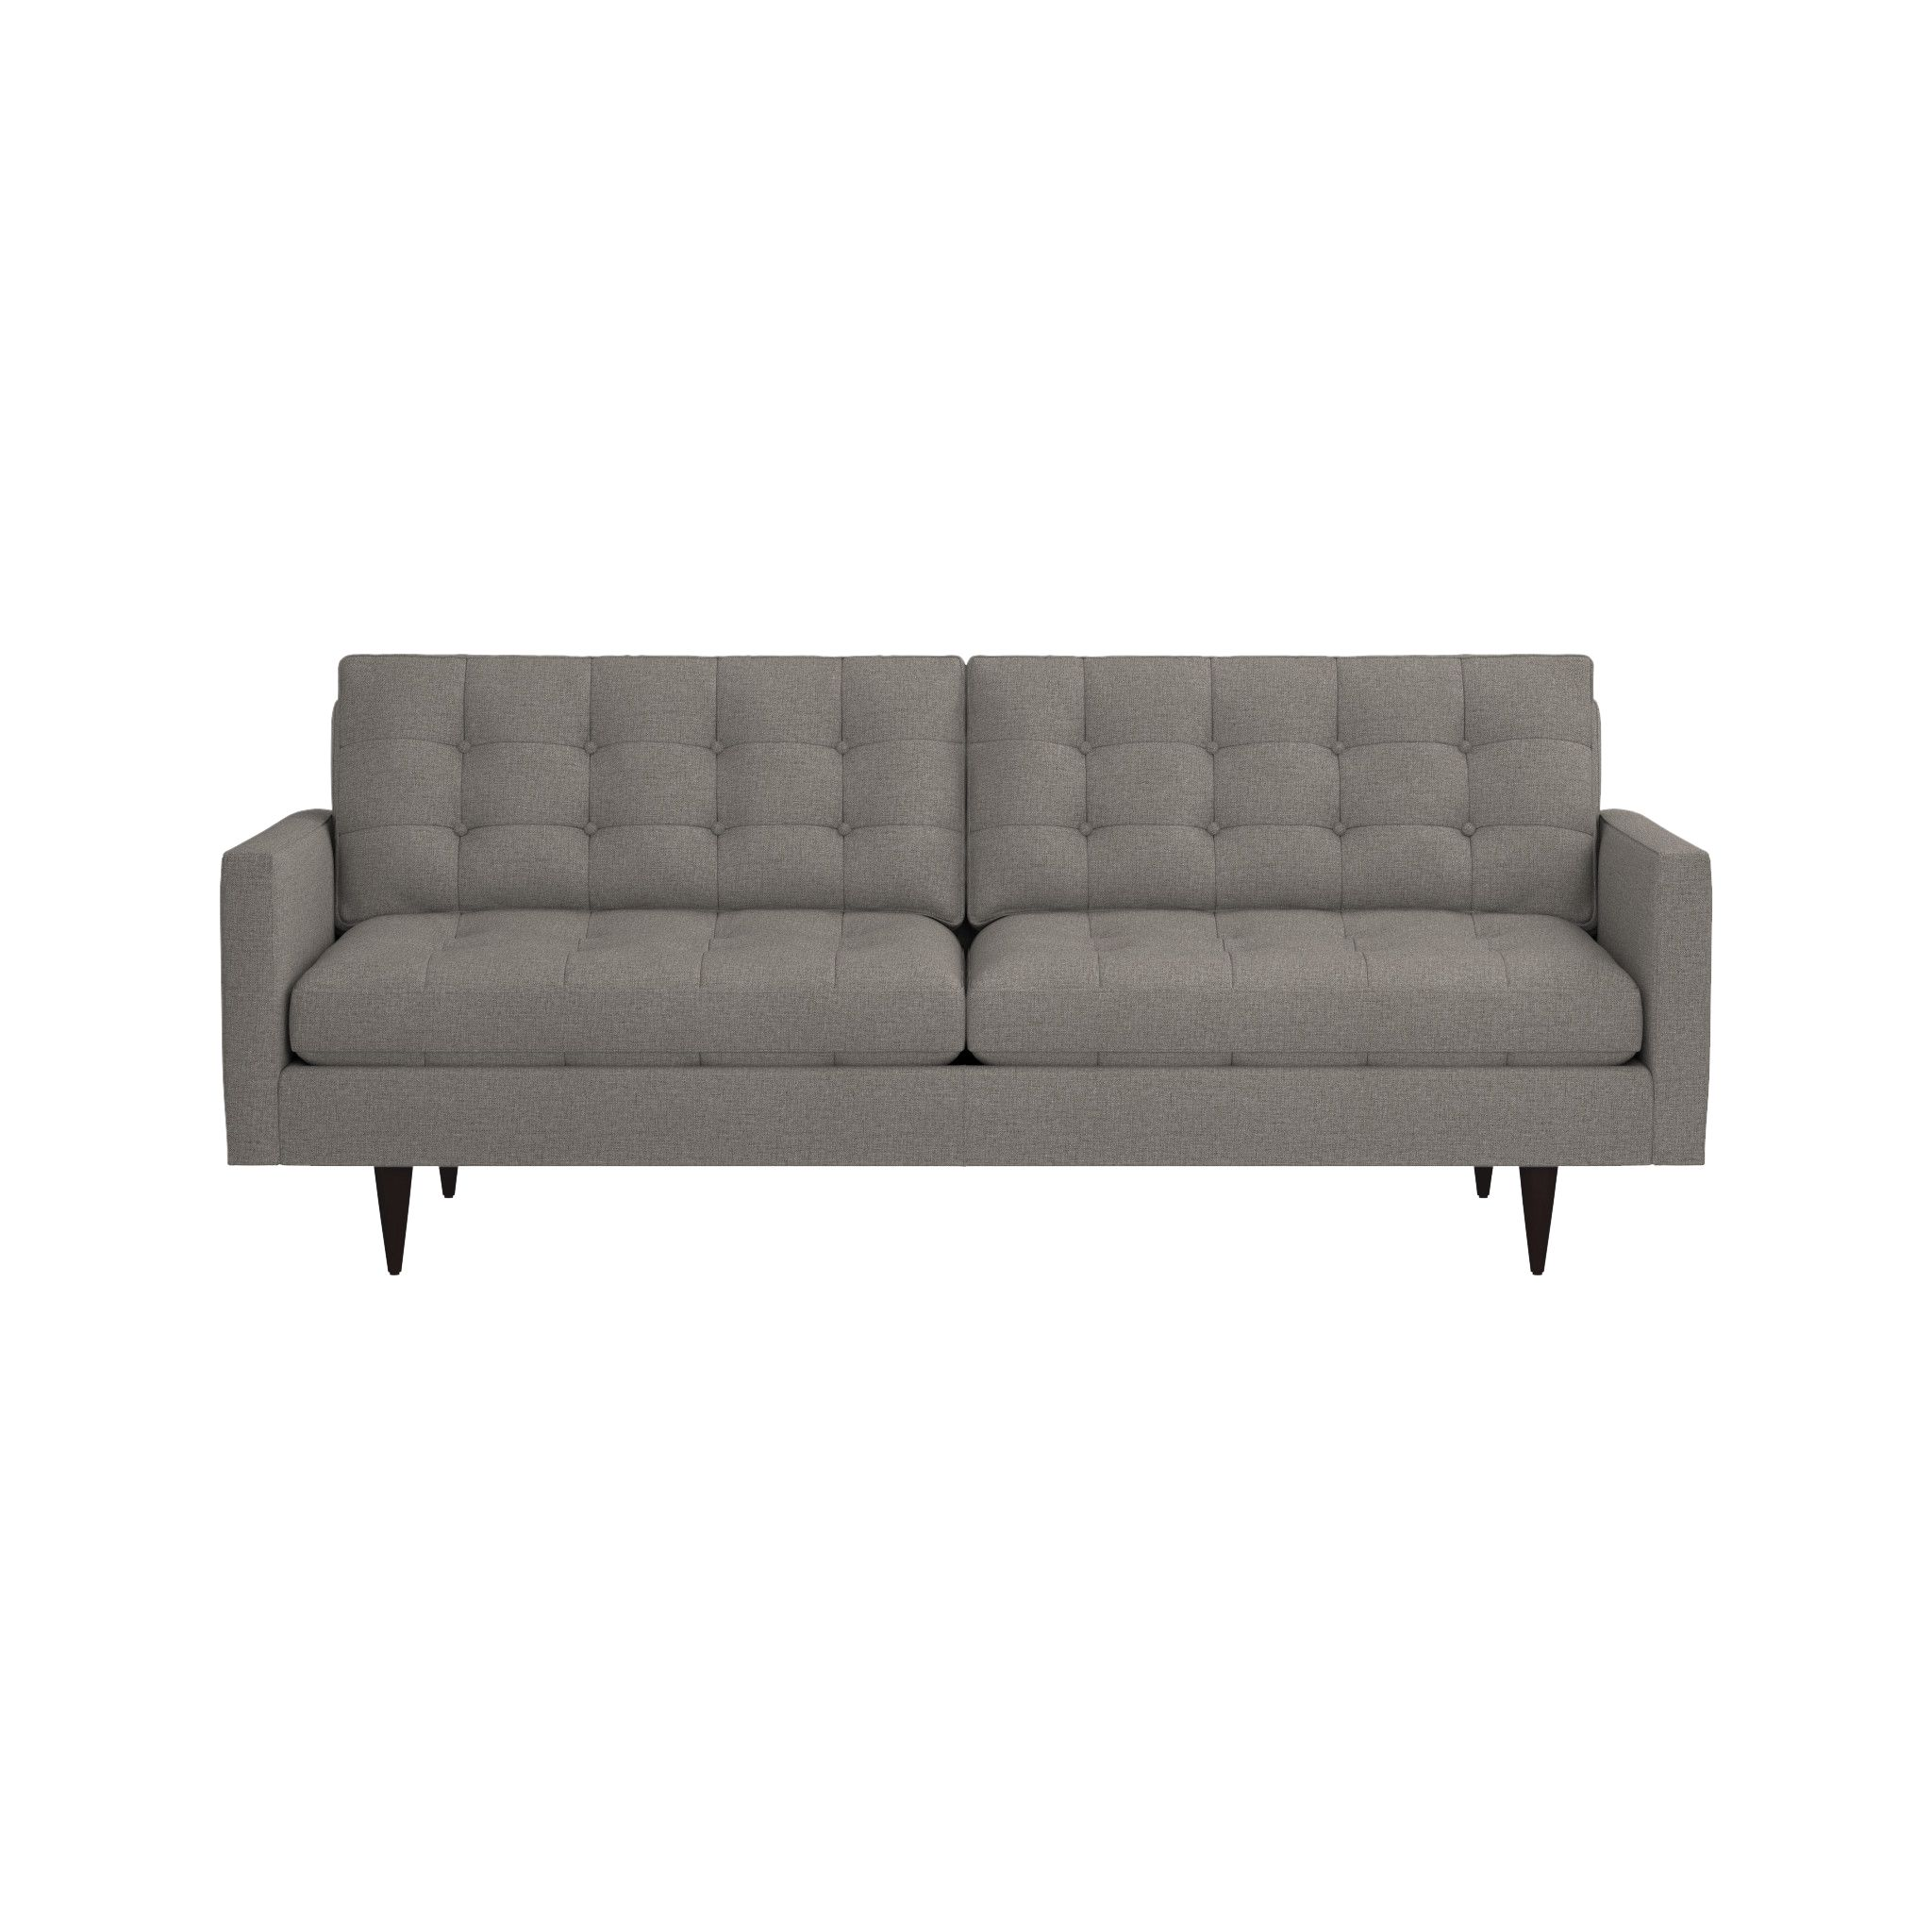 Crate and Barrel Lounge Couch | Crate and Barrel Verano Sofa Reviews | Crate and Barrel Couch